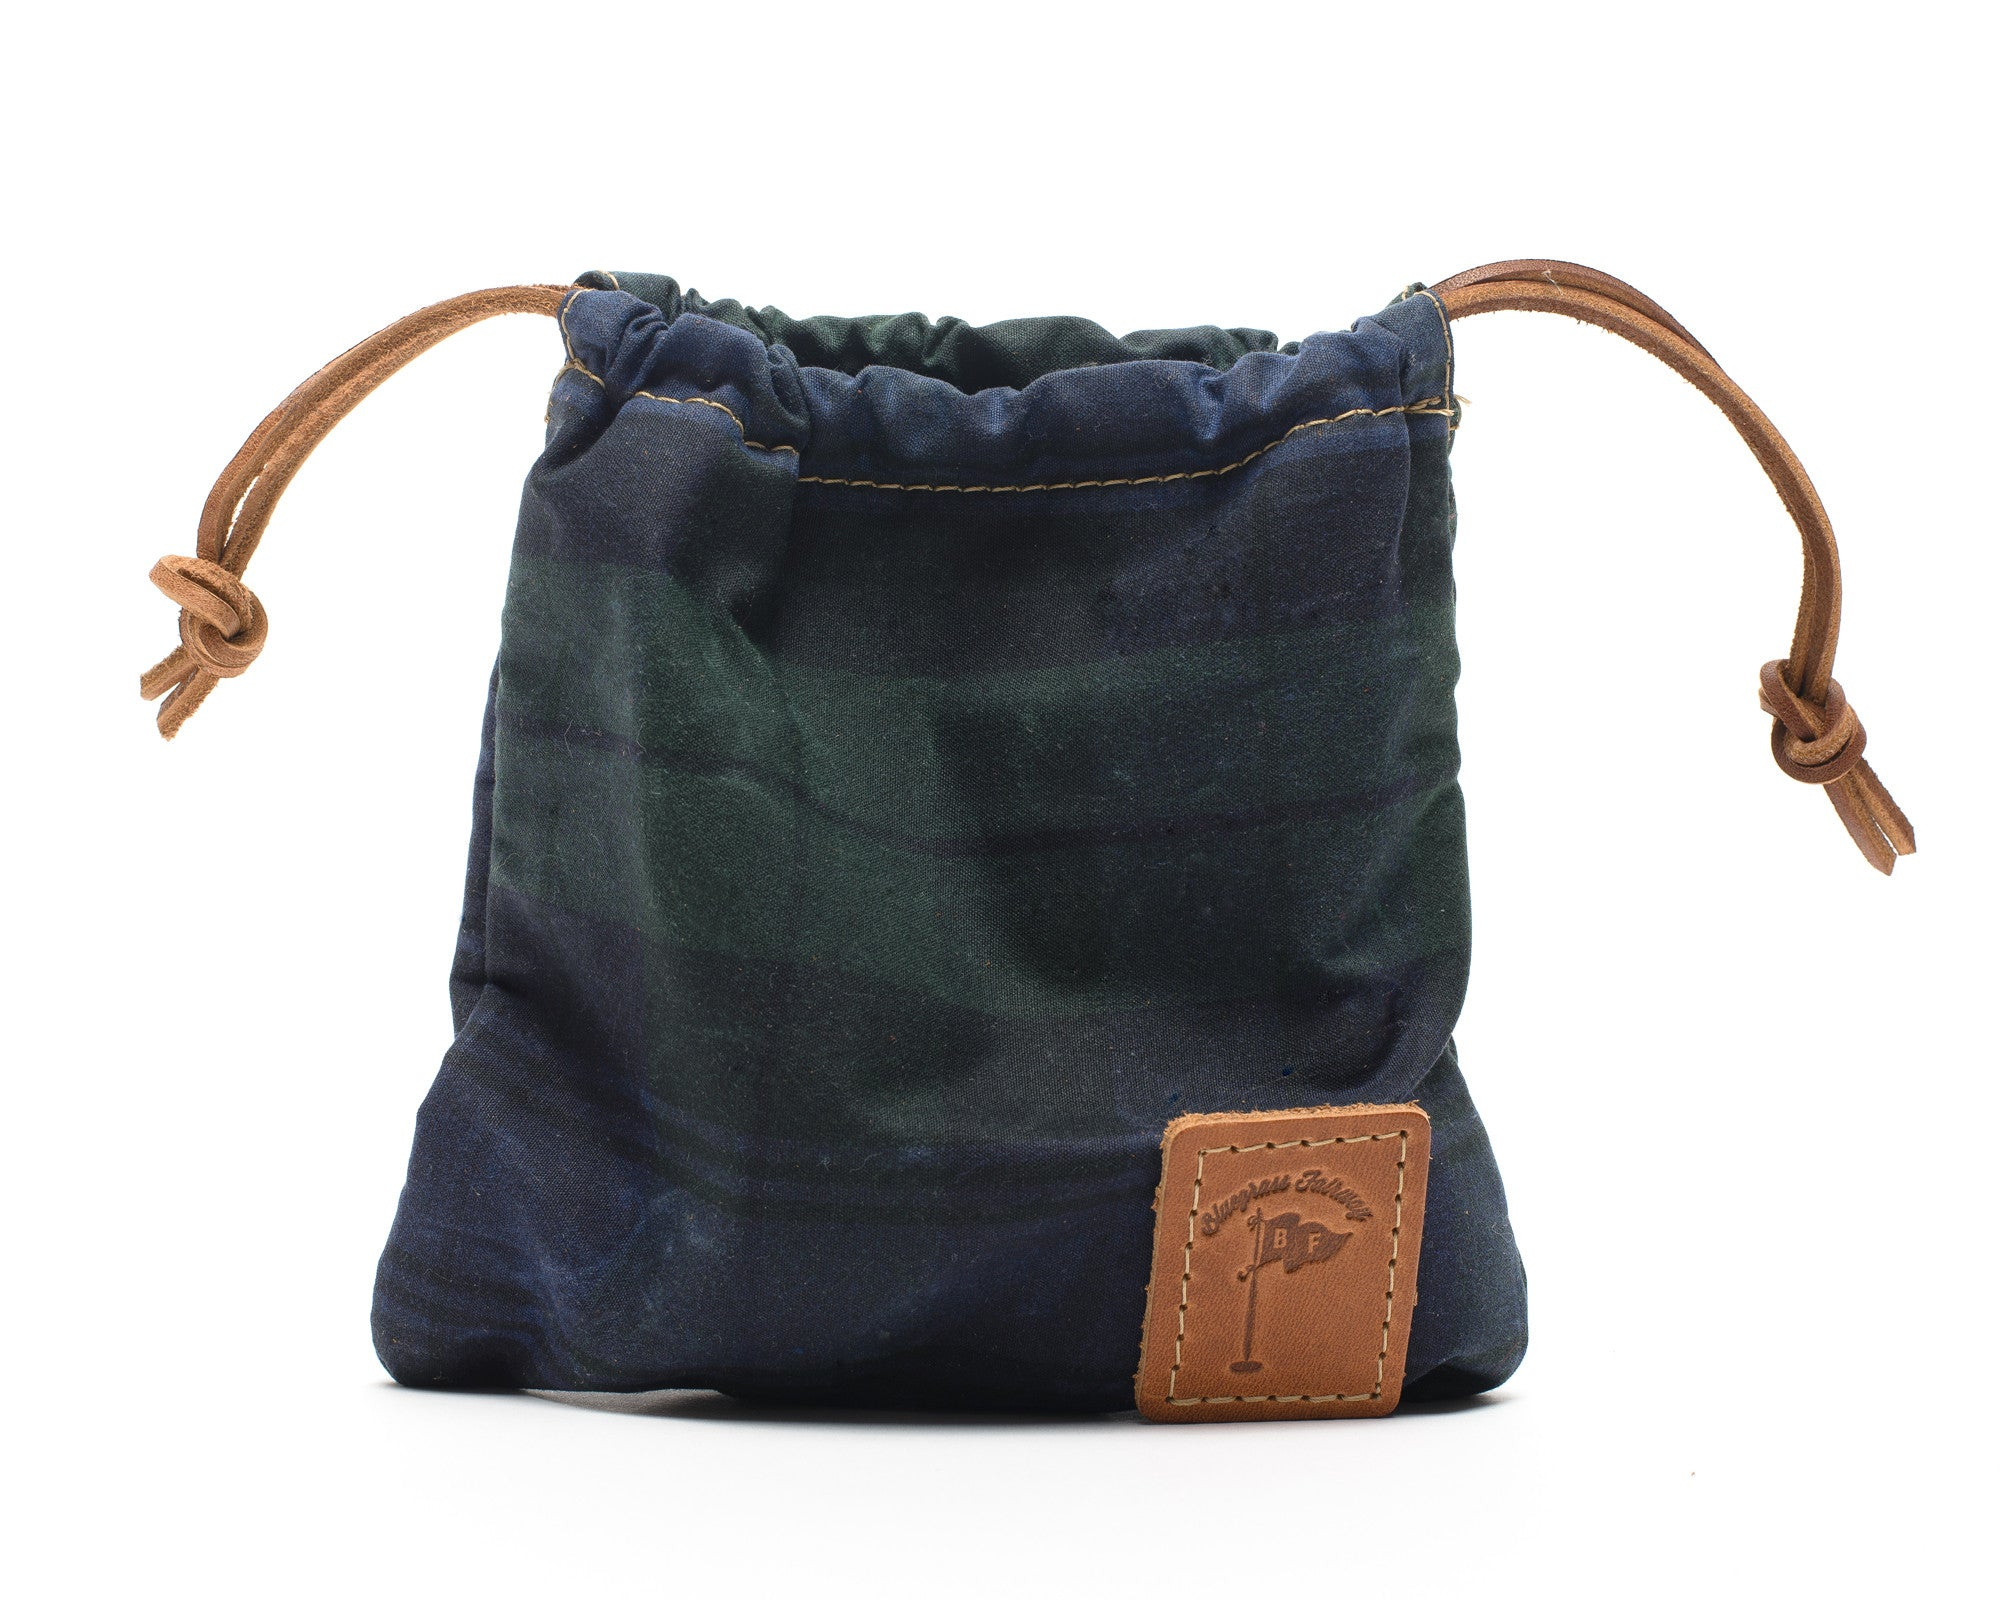 Waxed Canvas Golf Valuables Field Pouch in Black Watch Tartan